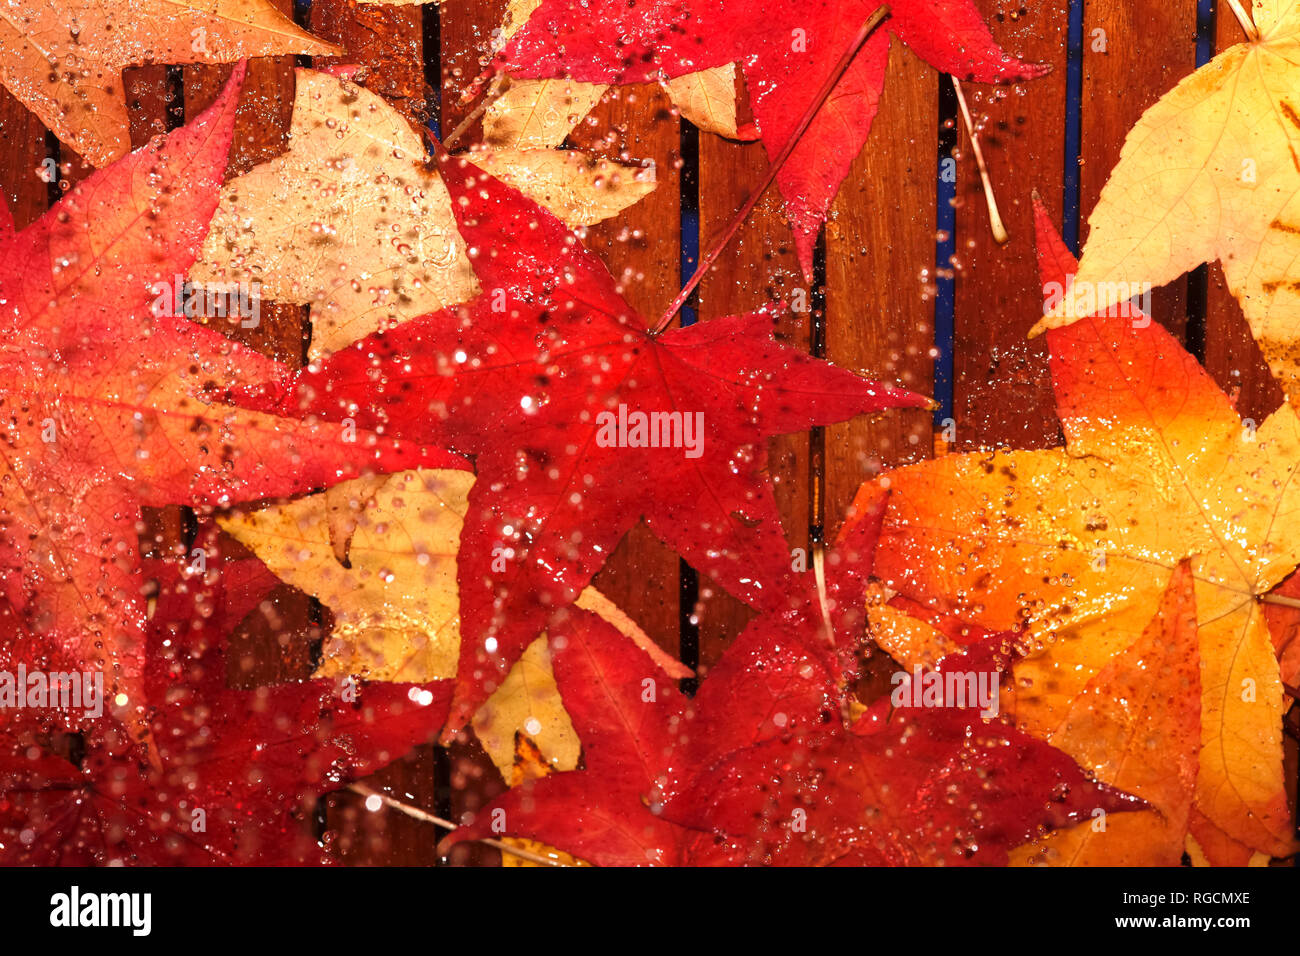 Wet autumn leaves of red gum - Stock Image